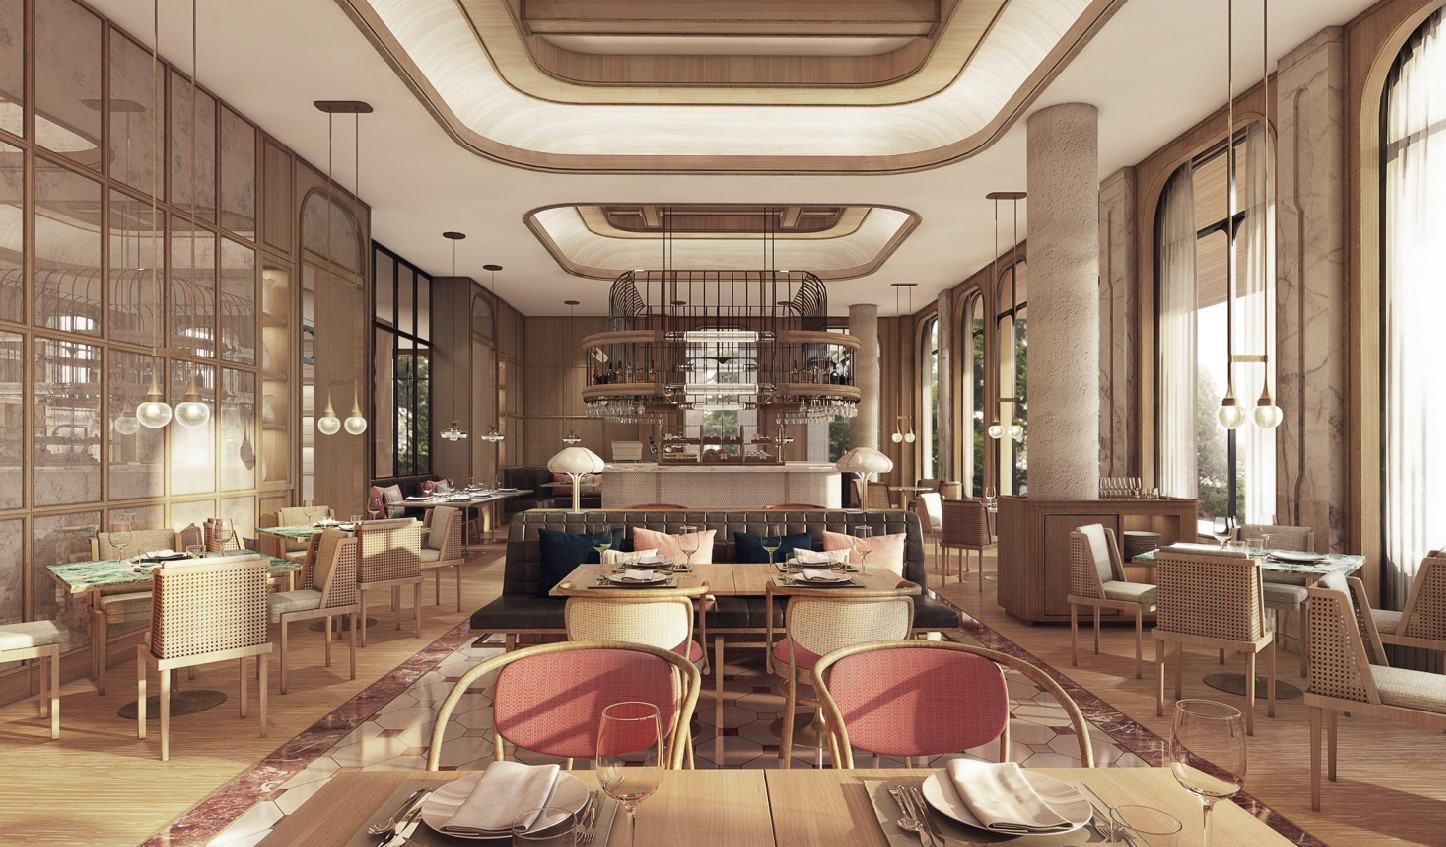 6 Of The Most Anticipated Bangkok Luxury Hotel Openings In 2018 2019